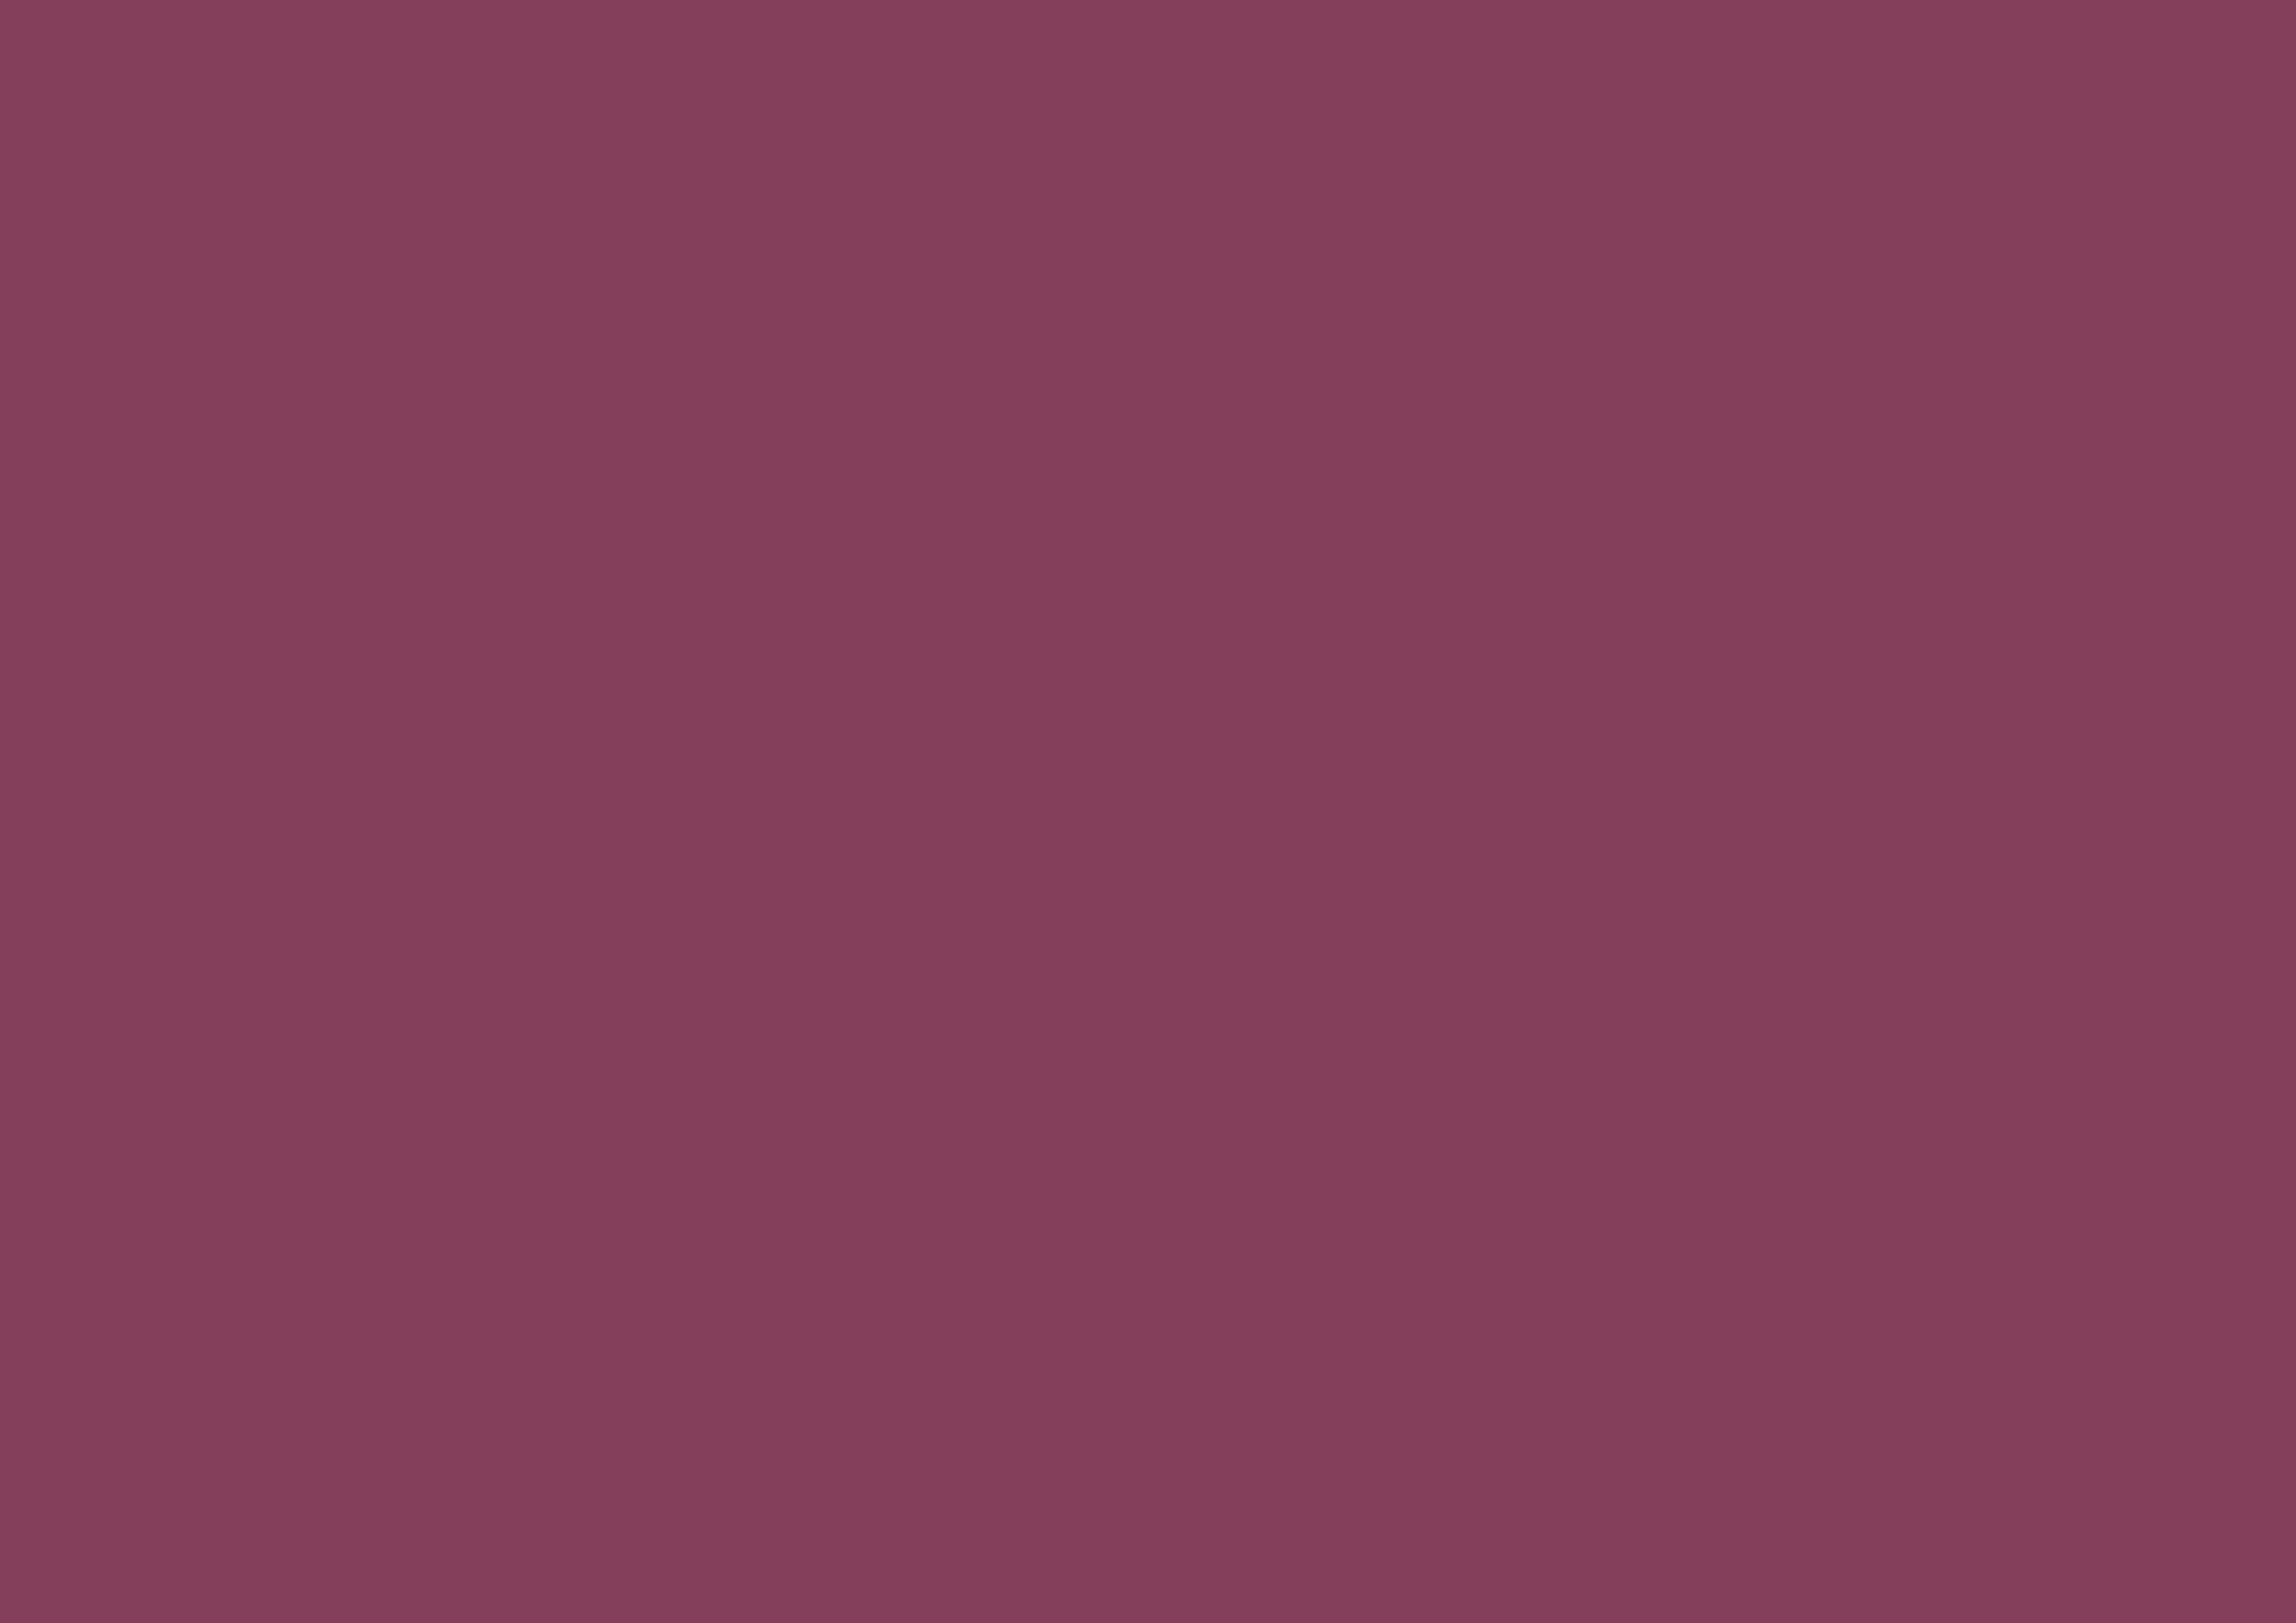 3508x2480 Deep Ruby Solid Color Background